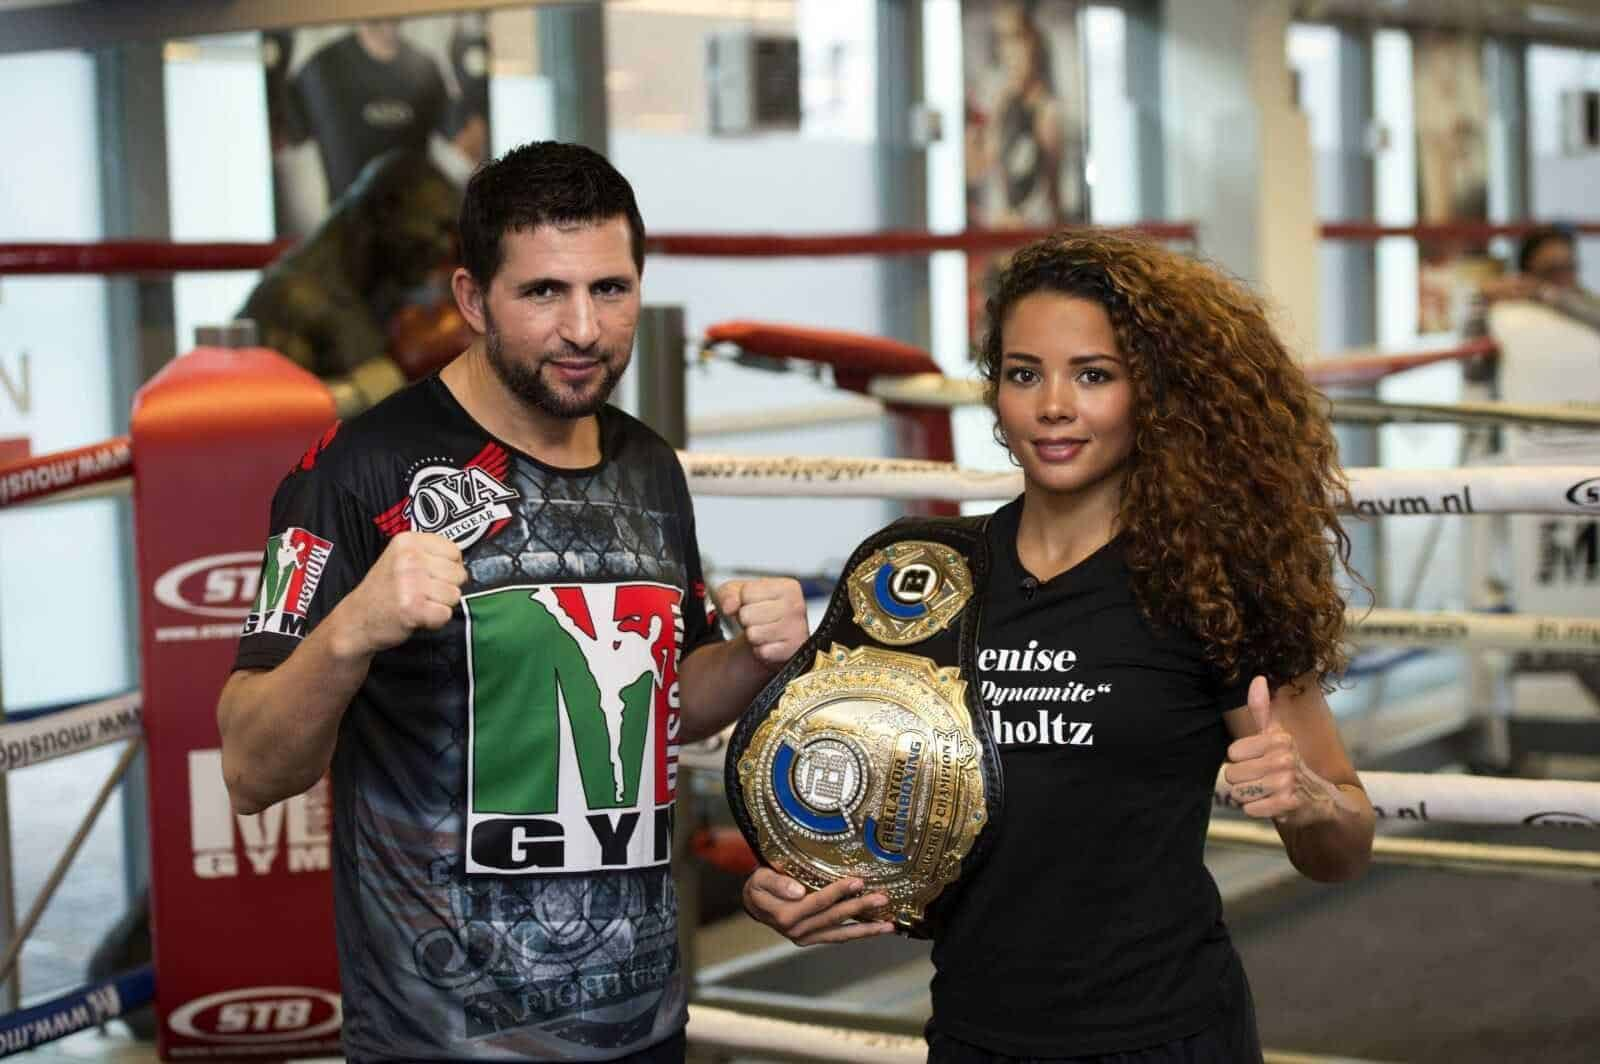 Dutch Kickboxing Gyms - 10 of the BEST you should visit!